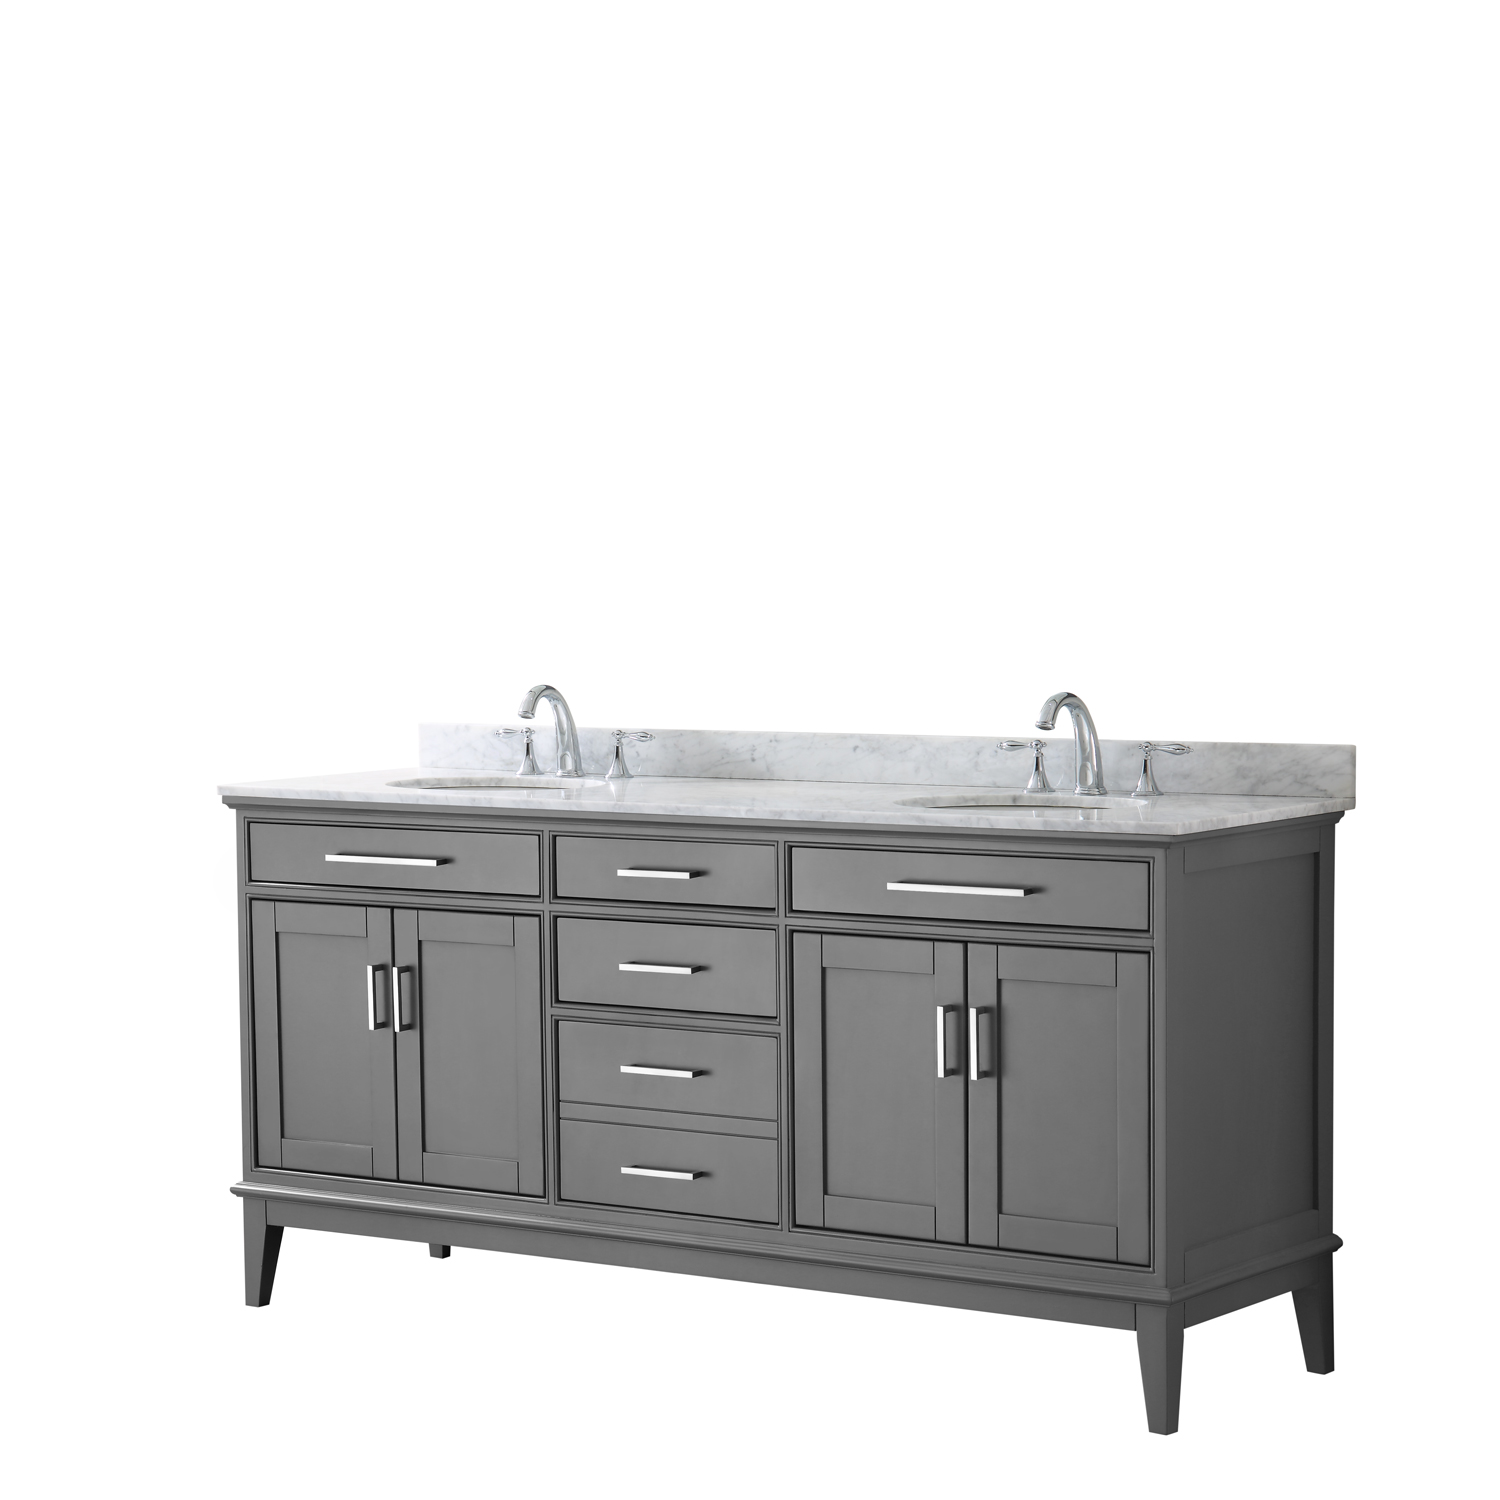 "Contemporary 72"" Double Bathroom Vanity in Dark Gray, White Carrara Marble Countertop with Undermount Sinks, and Mirror Options"